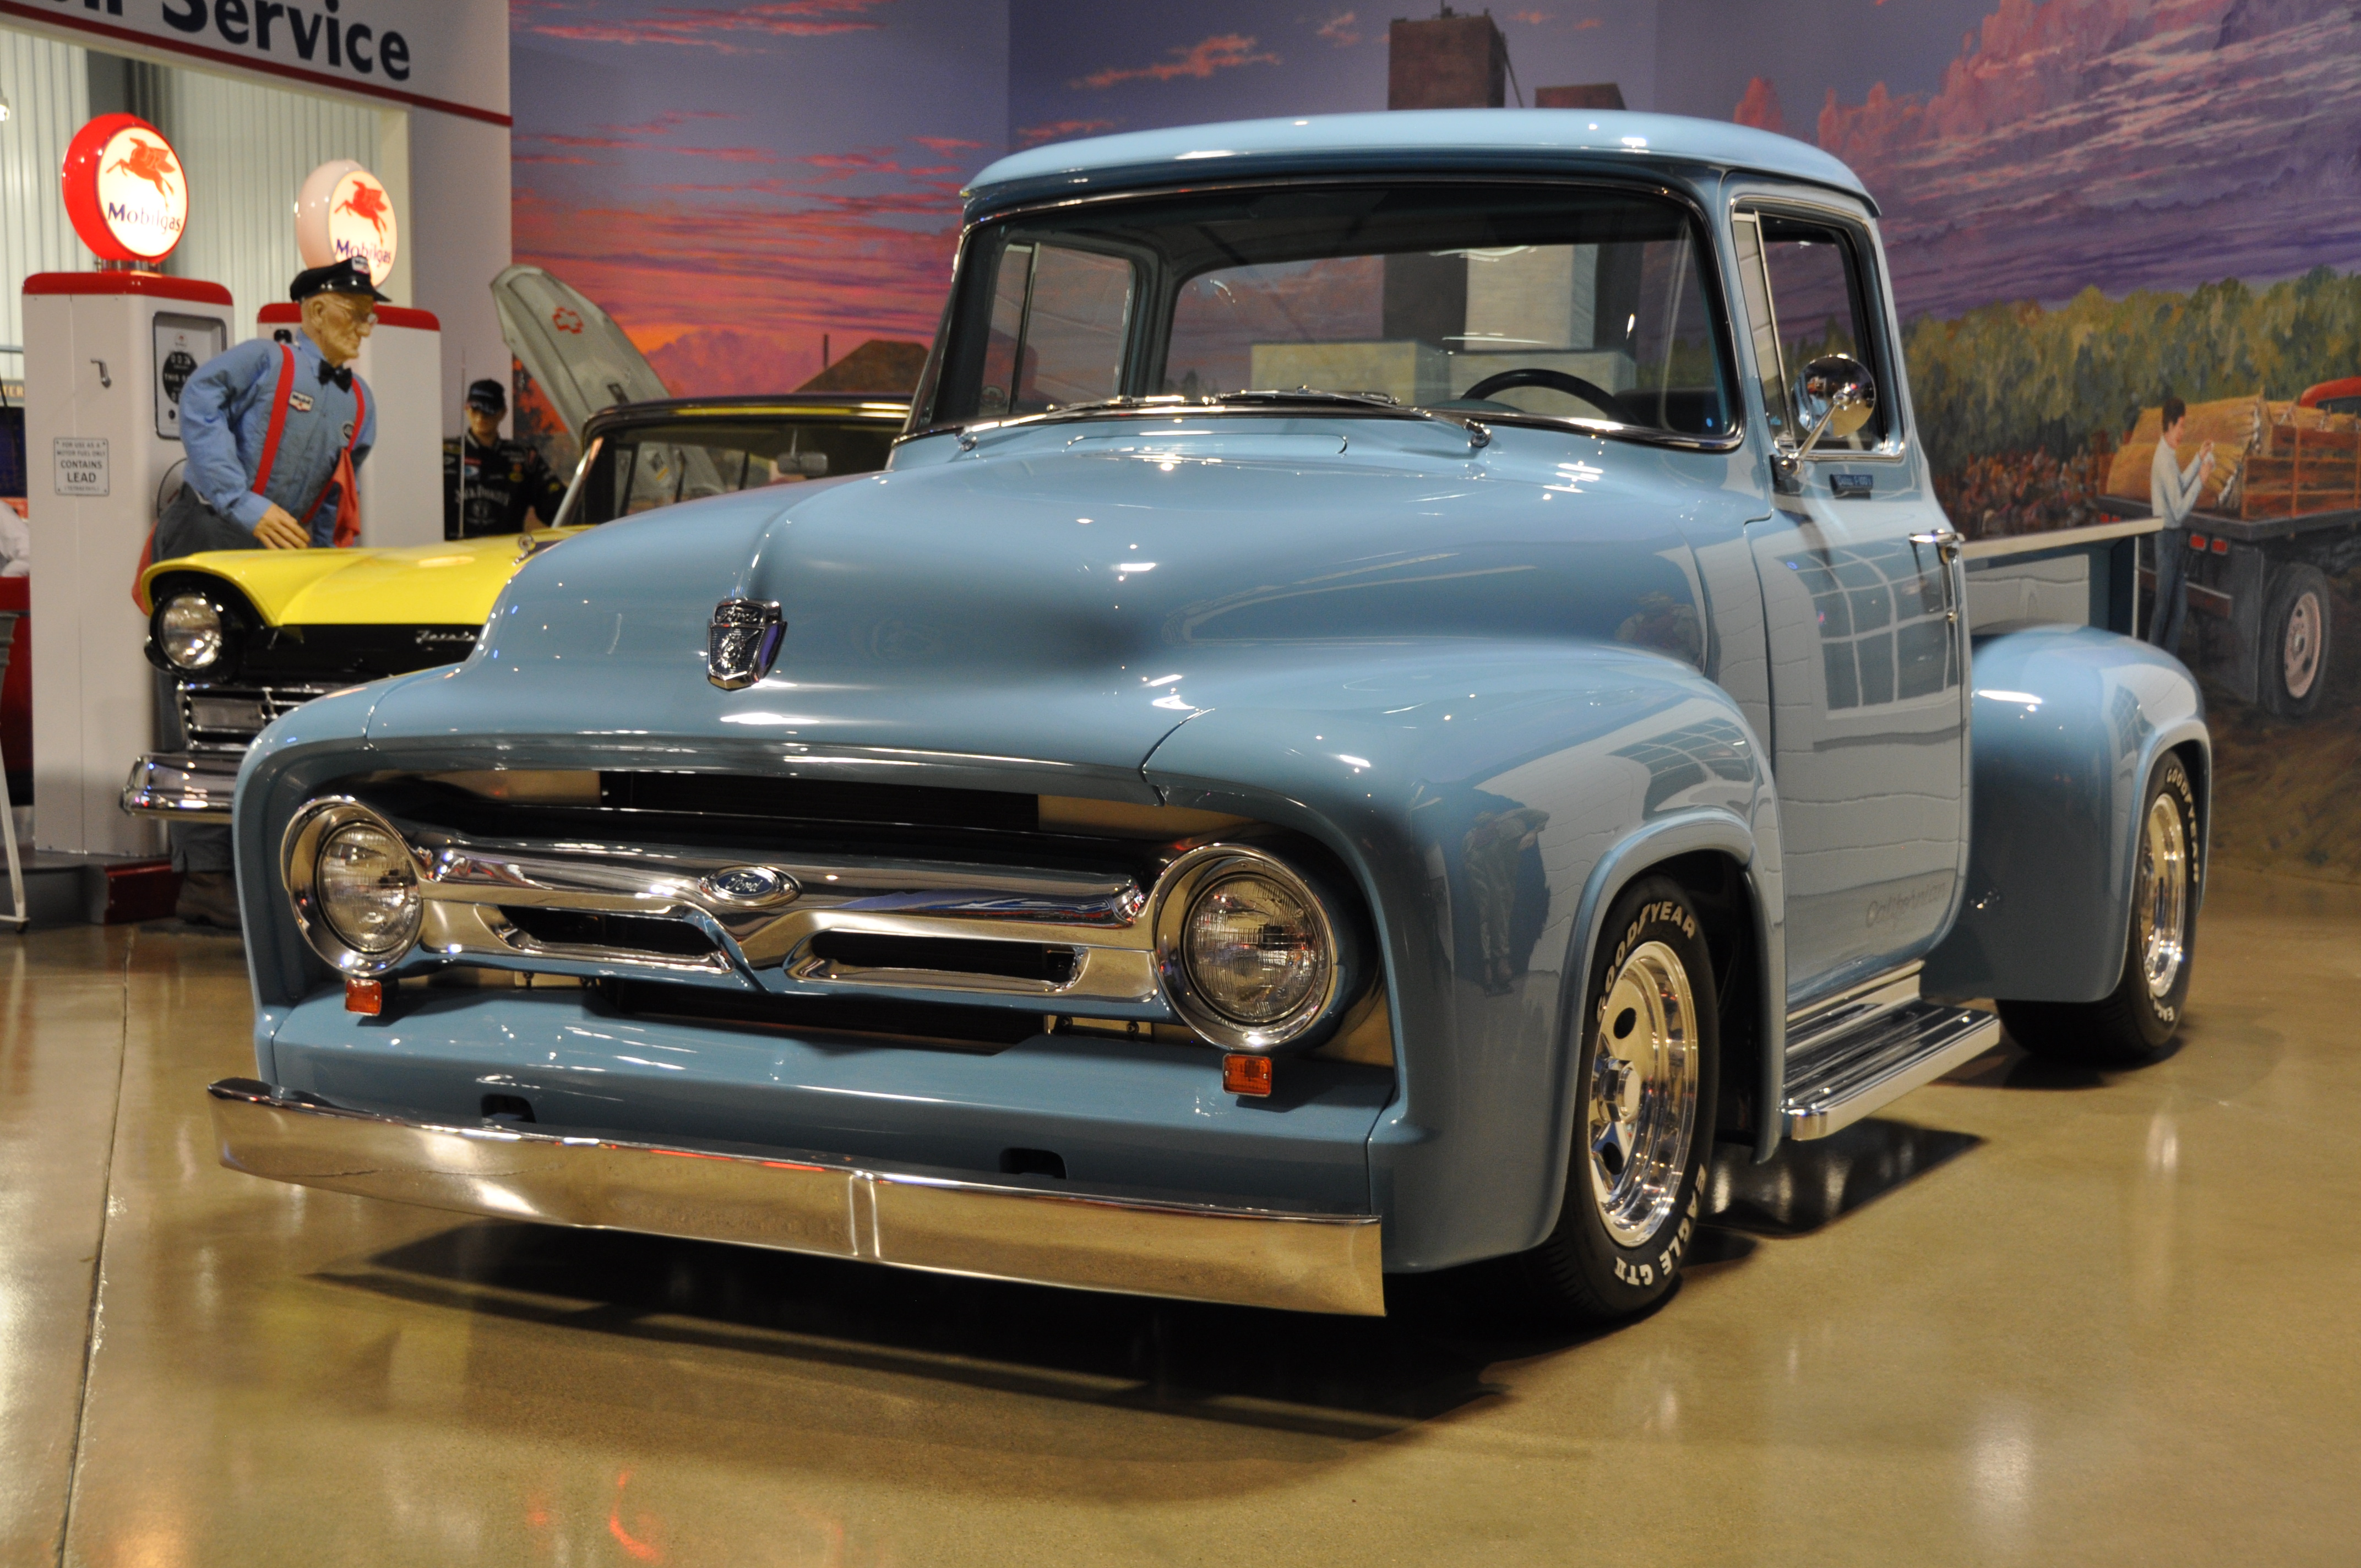 1954 Ford F100 Custom Long Bed From The Okoboji Museum Collection Vehicle To Be Offered For Auction Sale January 19th 22nd 2017 At Russo And Steeles 17th Annual Scottsdale Arizona